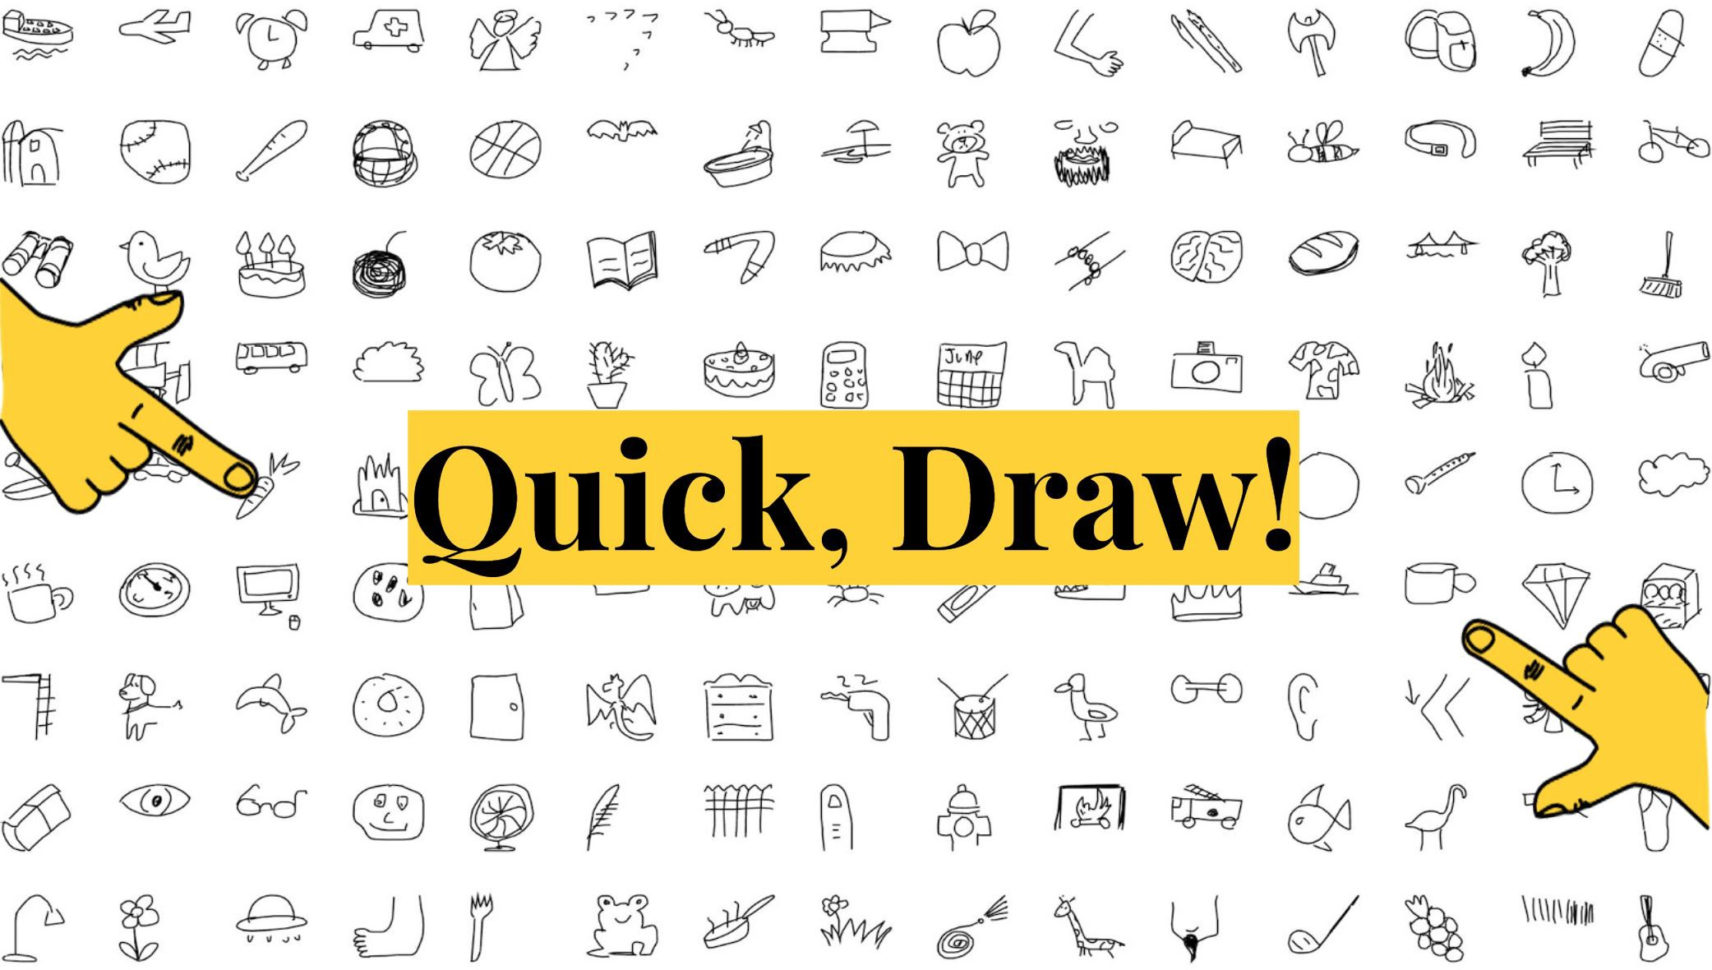 Spreadsheet Quick Draw In Doodling With Deep Learning! – Towards Data Science